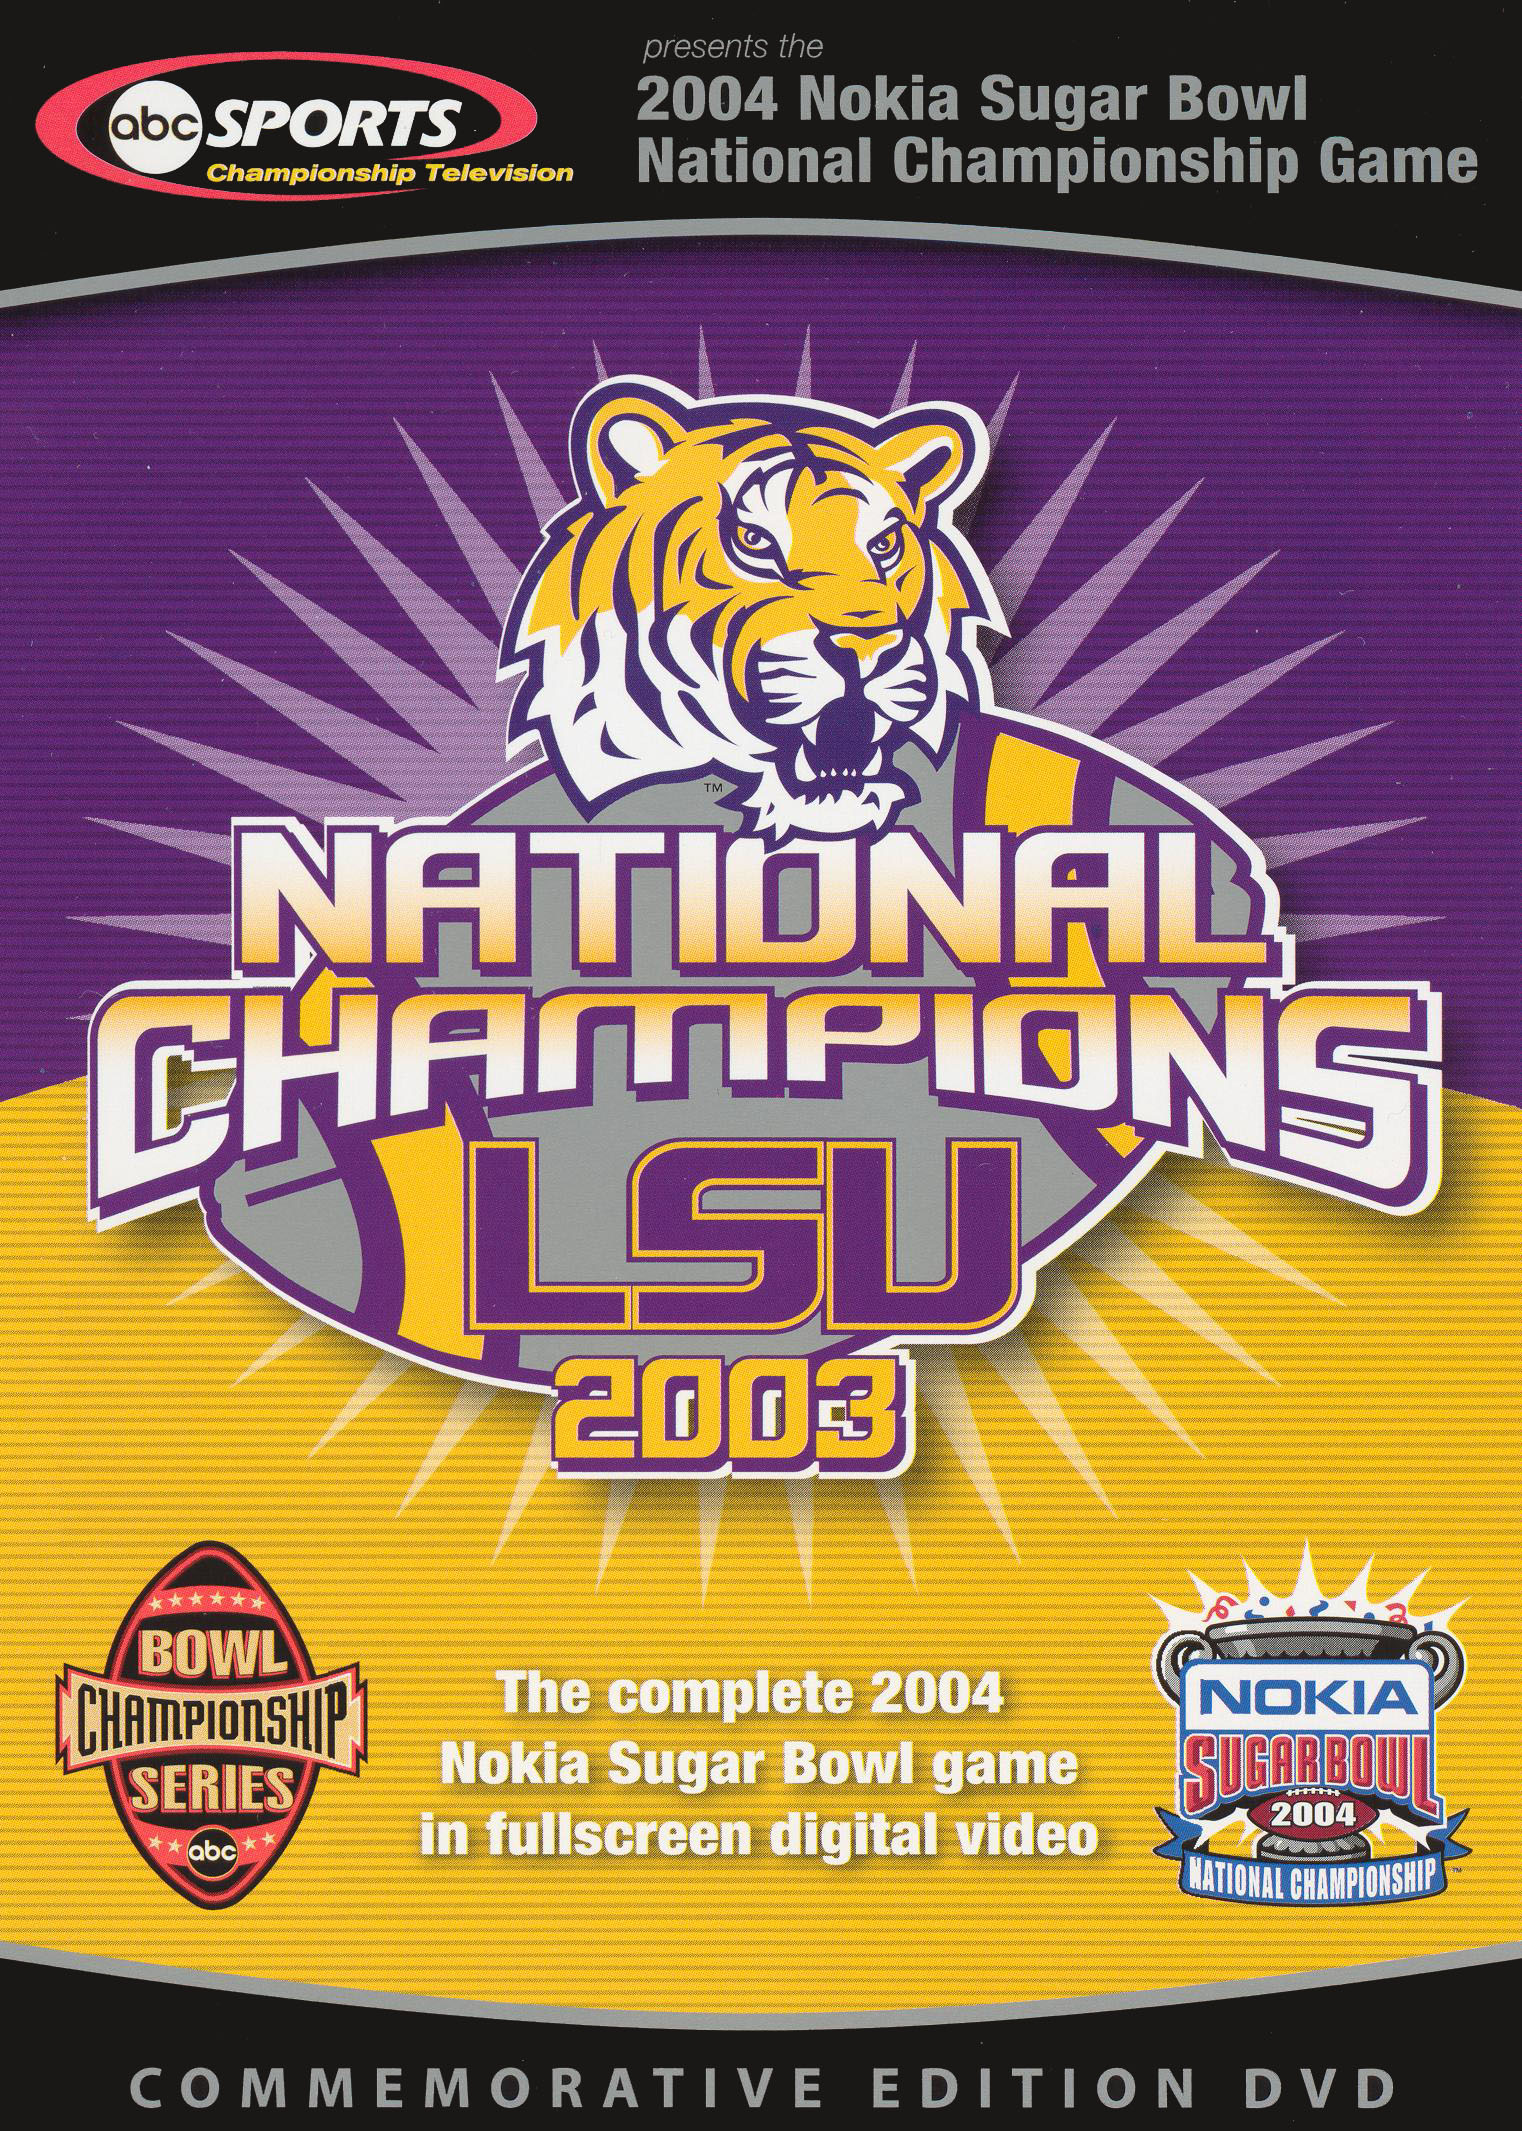 The 2004 Nokia Sugar Bowl National Championship Game - LSU National Champions 2003